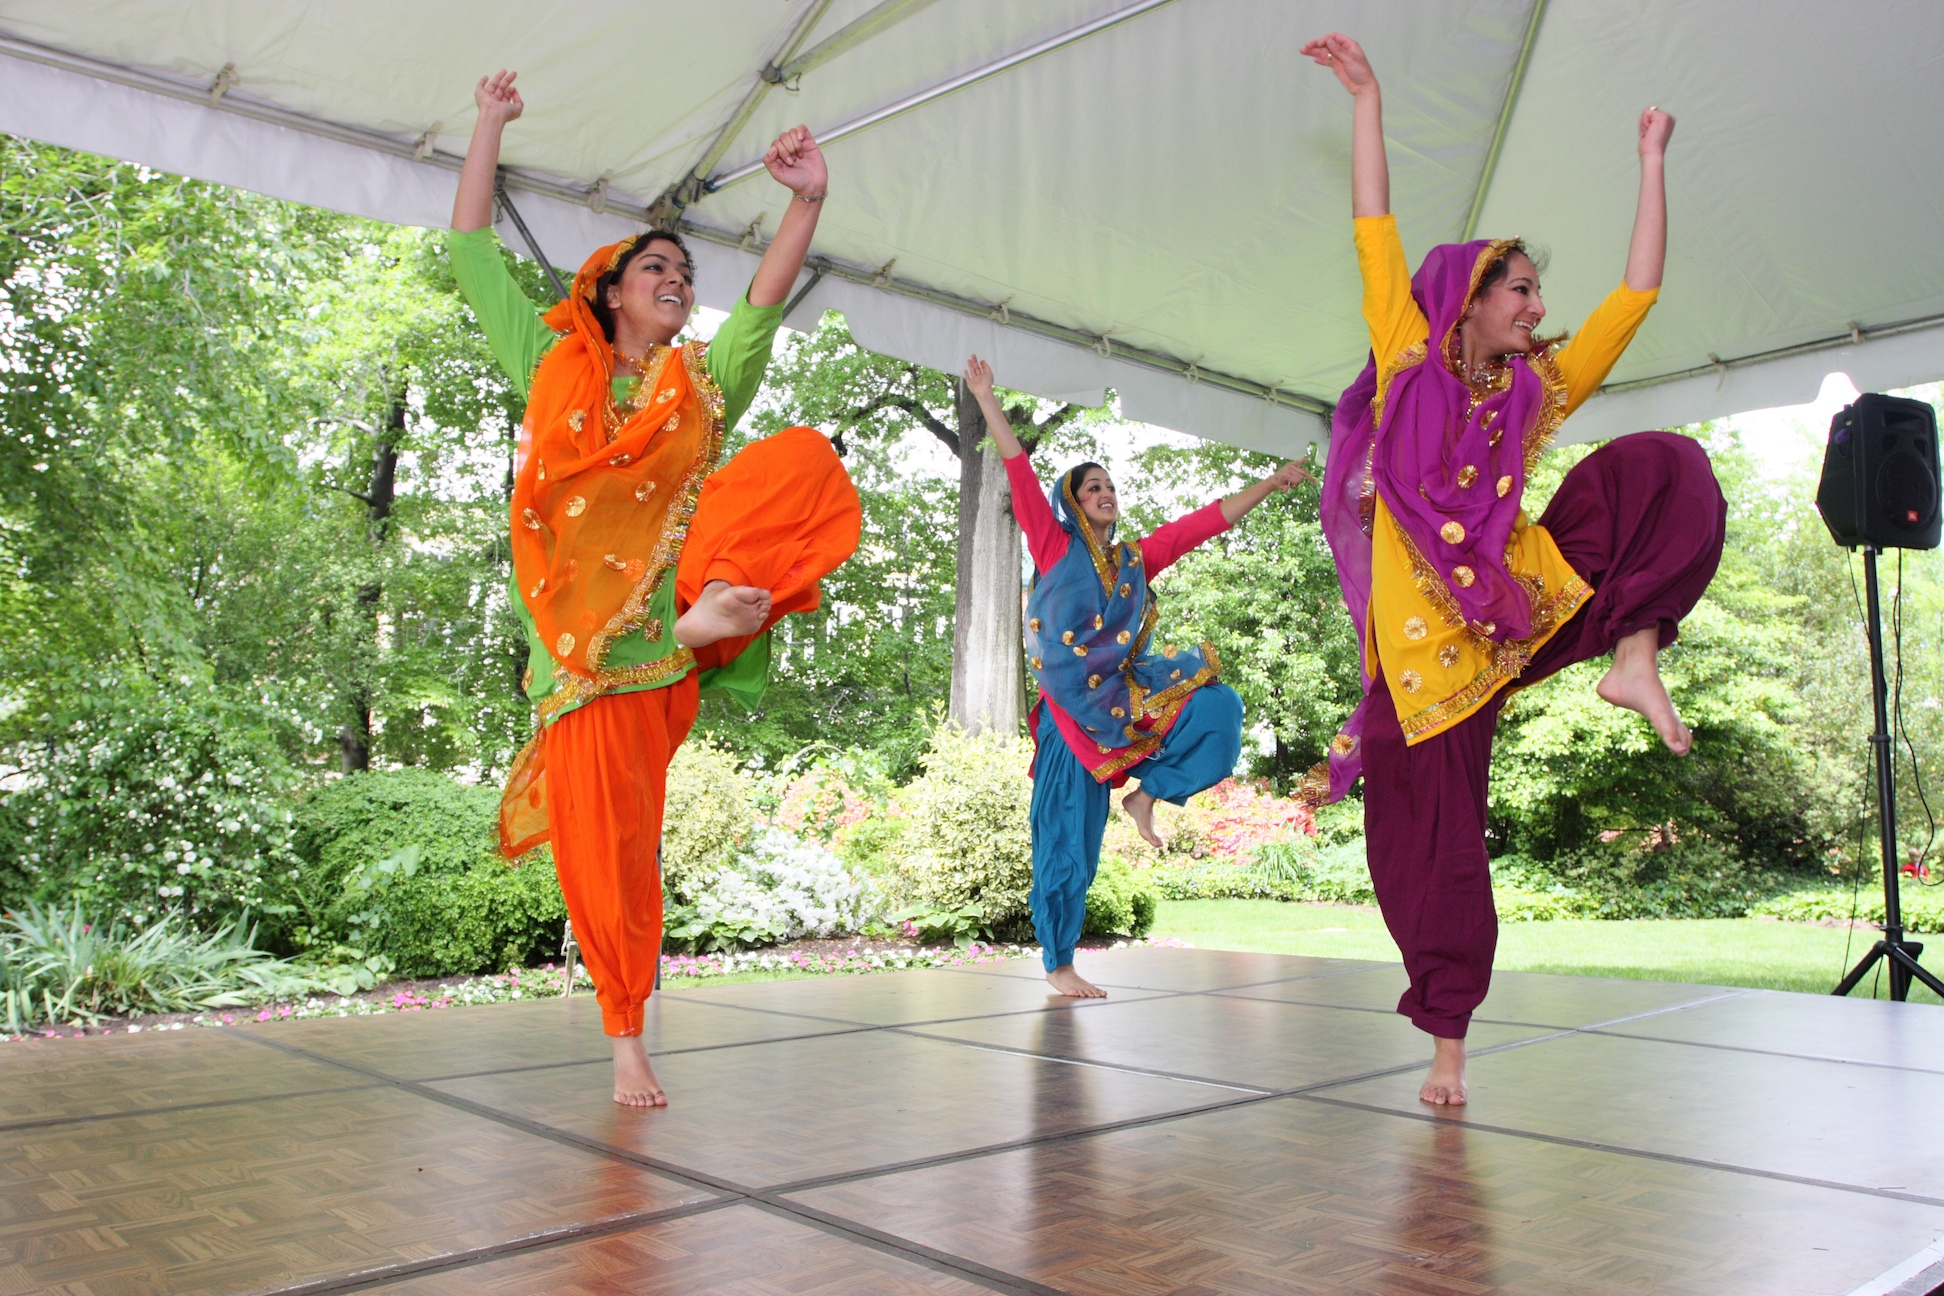 Come celebrate Punjabi & Sikh culture in Union Square this Saturday, September 7